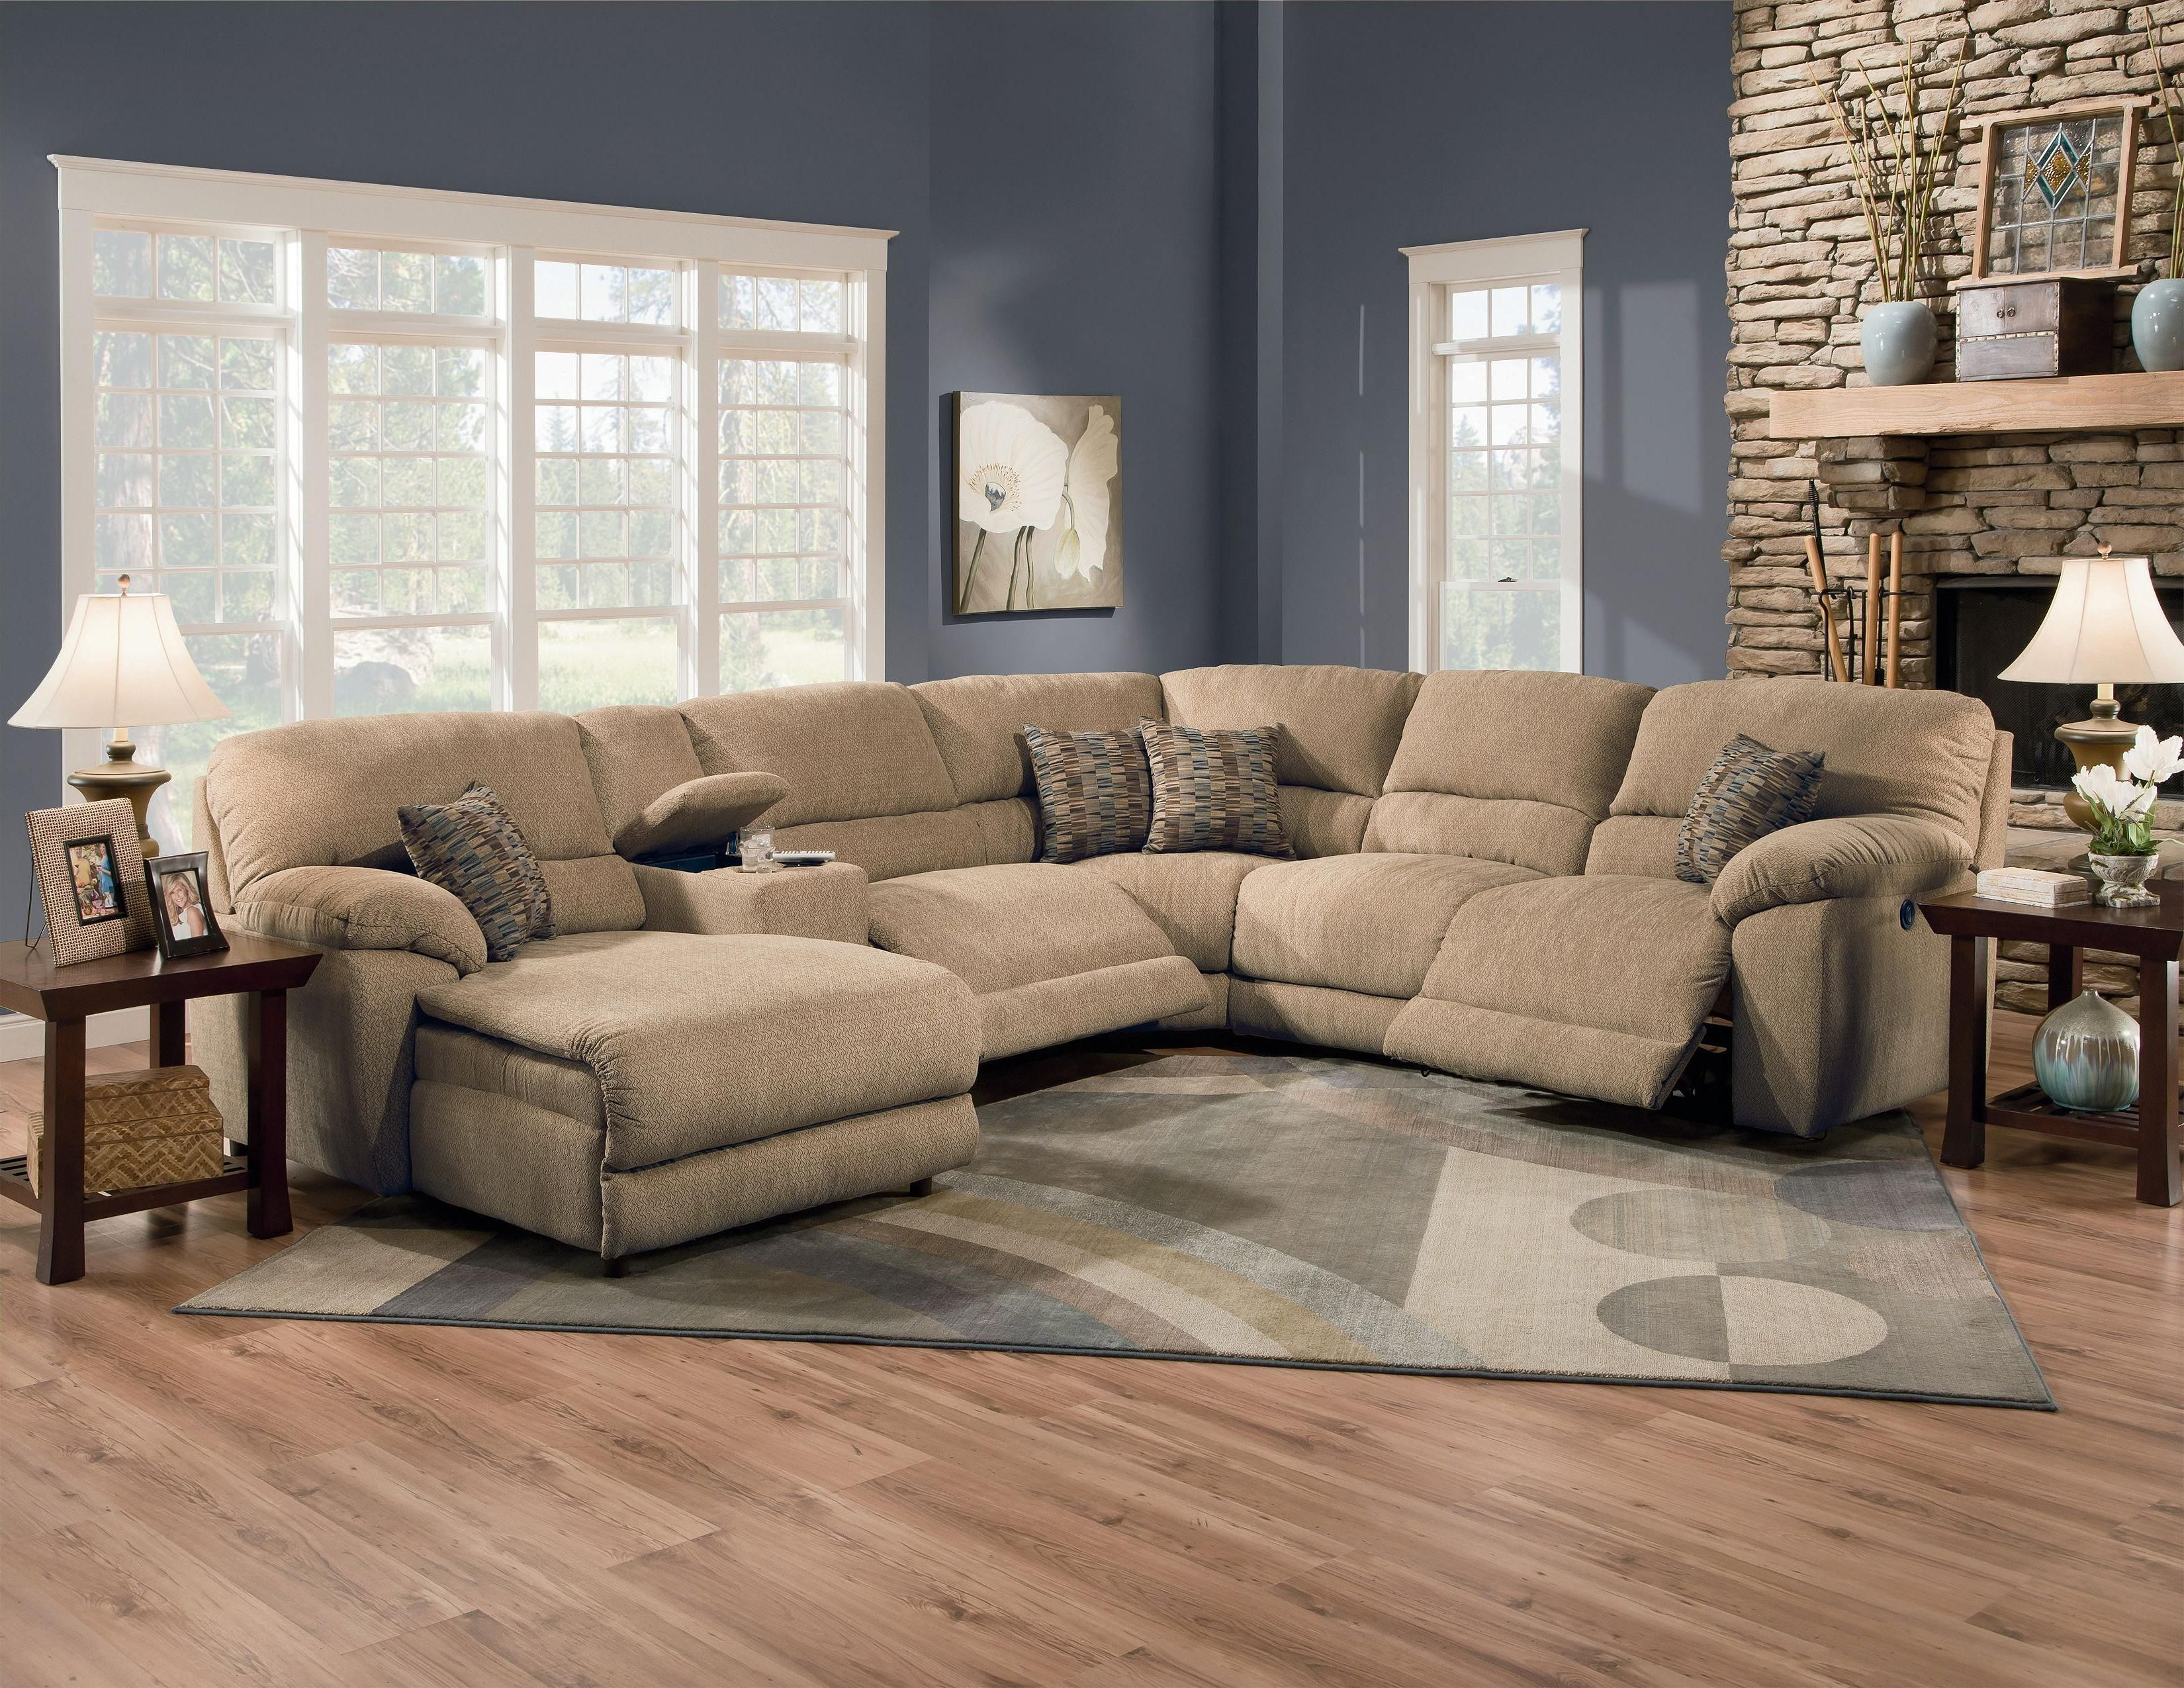 Lane Home Furnishings Leather Sofa And Loveseat From The Bowden Collection Aqua Sectional Furniture Rivers Featuring Power